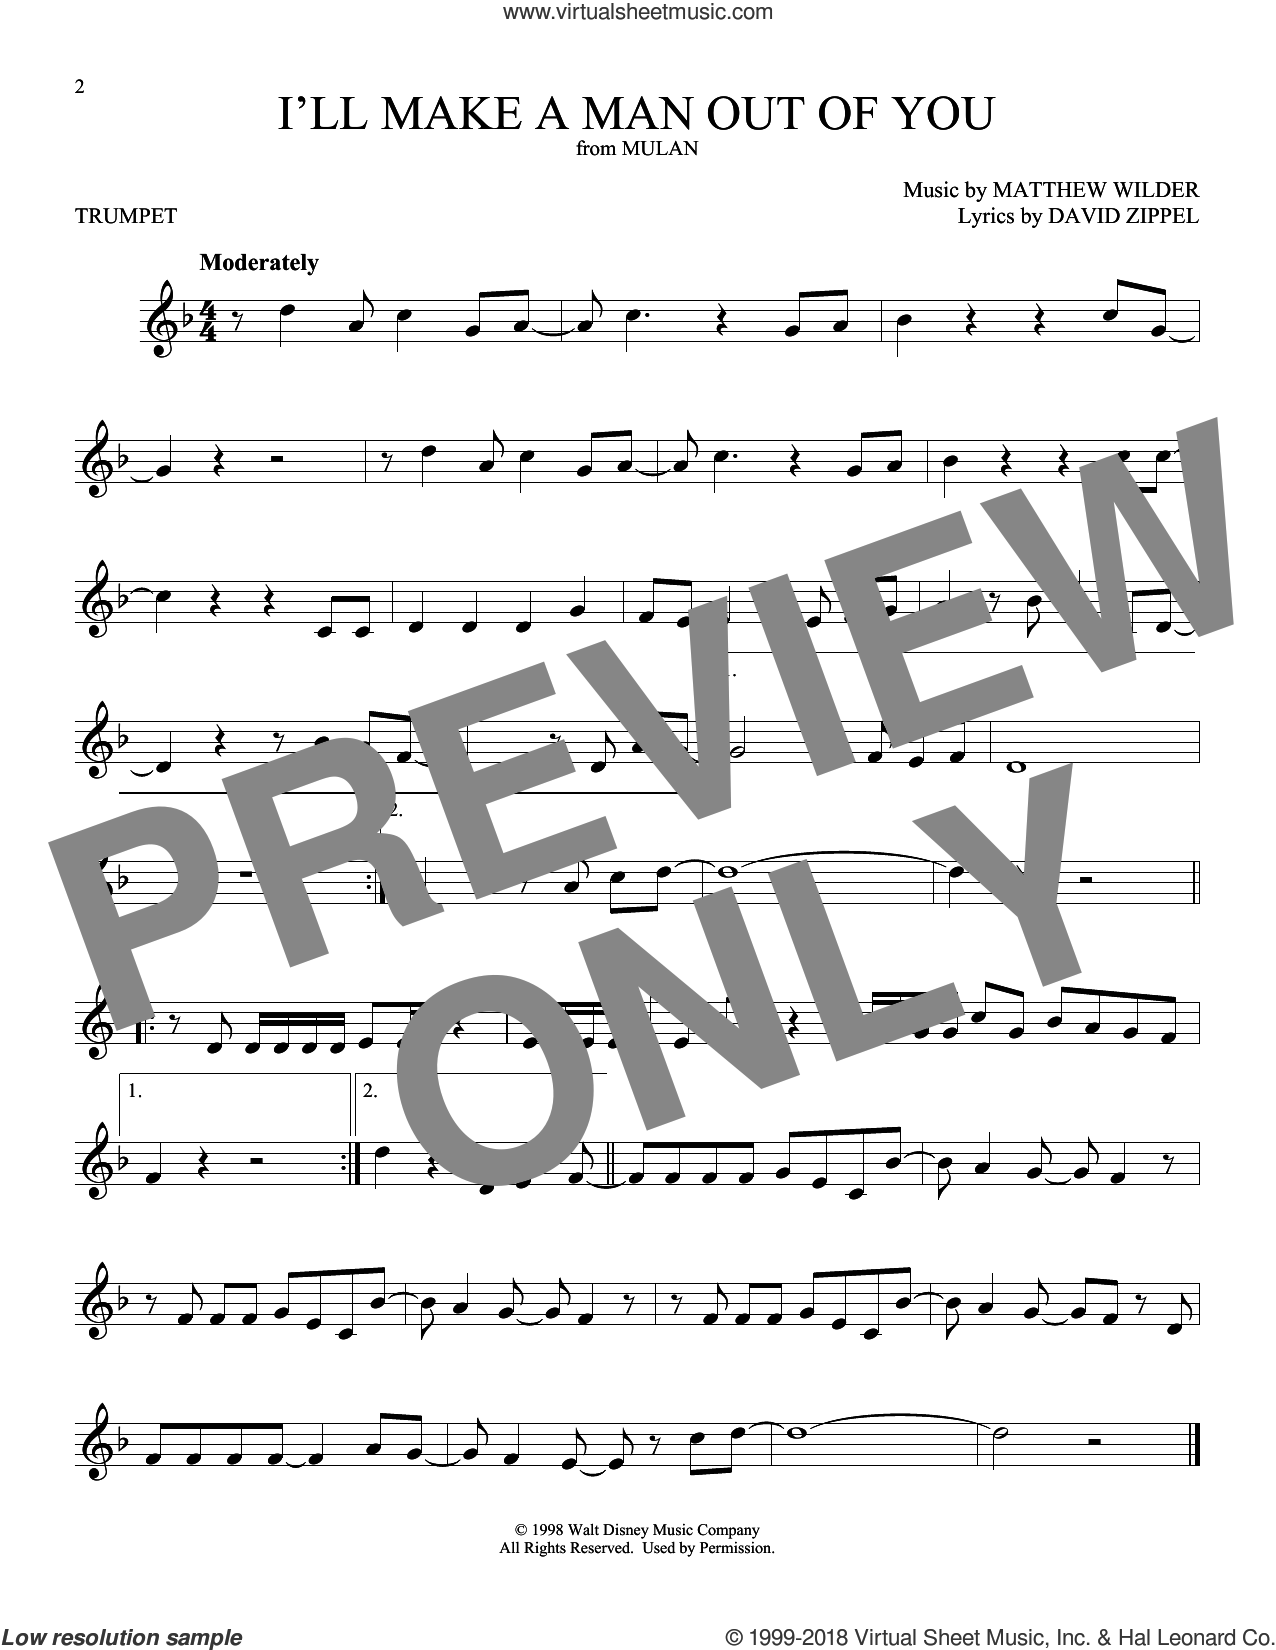 I'll Make A Man Out Of You (from Mulan) sheet music for trumpet solo by David Zippel and Matthew Wilder, intermediate skill level